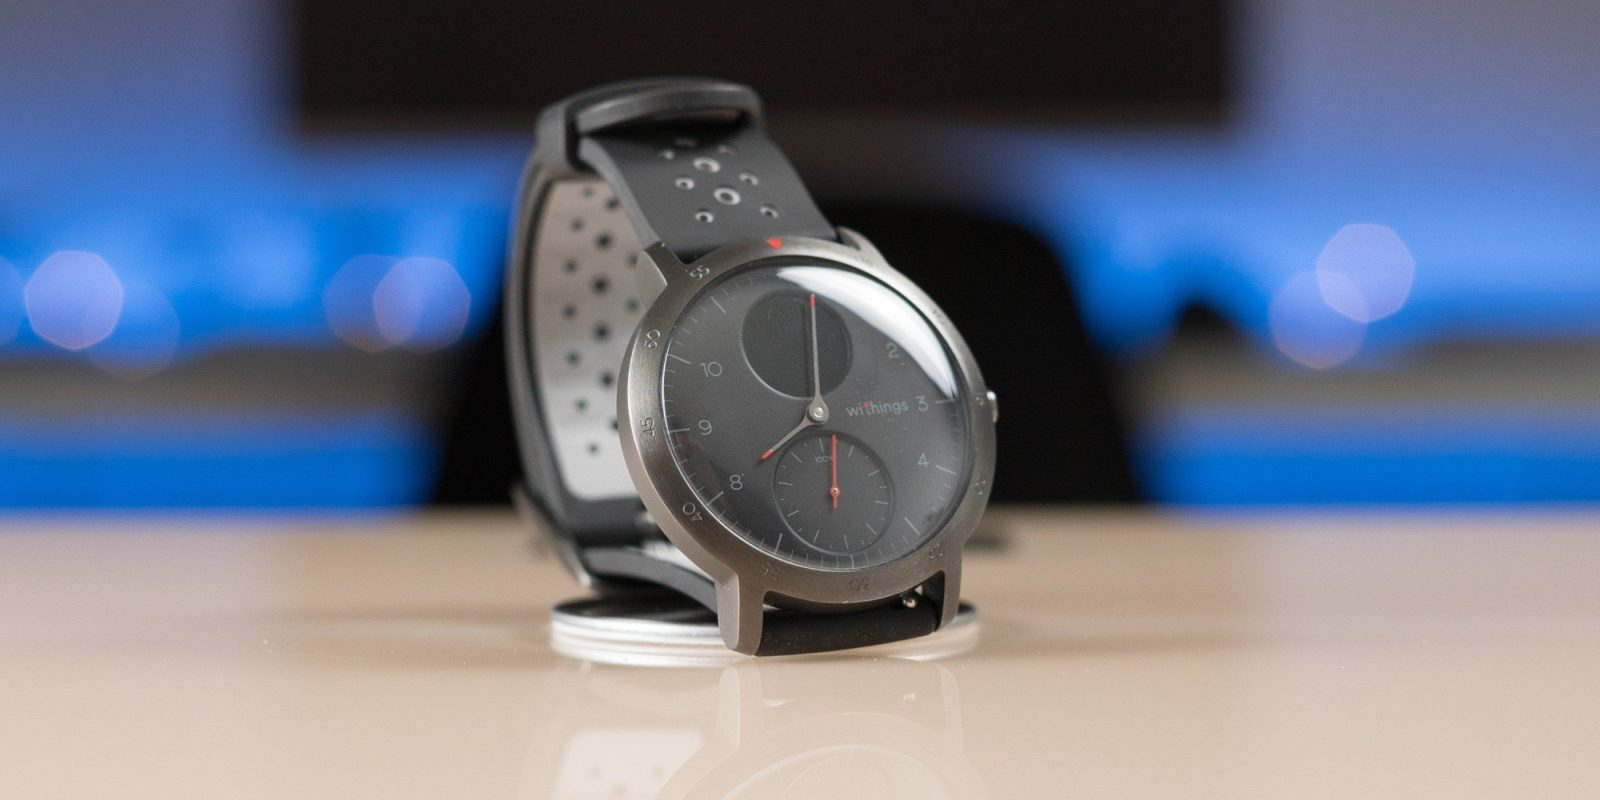 Monitor sleep, heart rate and more with Withings Steel Smartwatches from $144